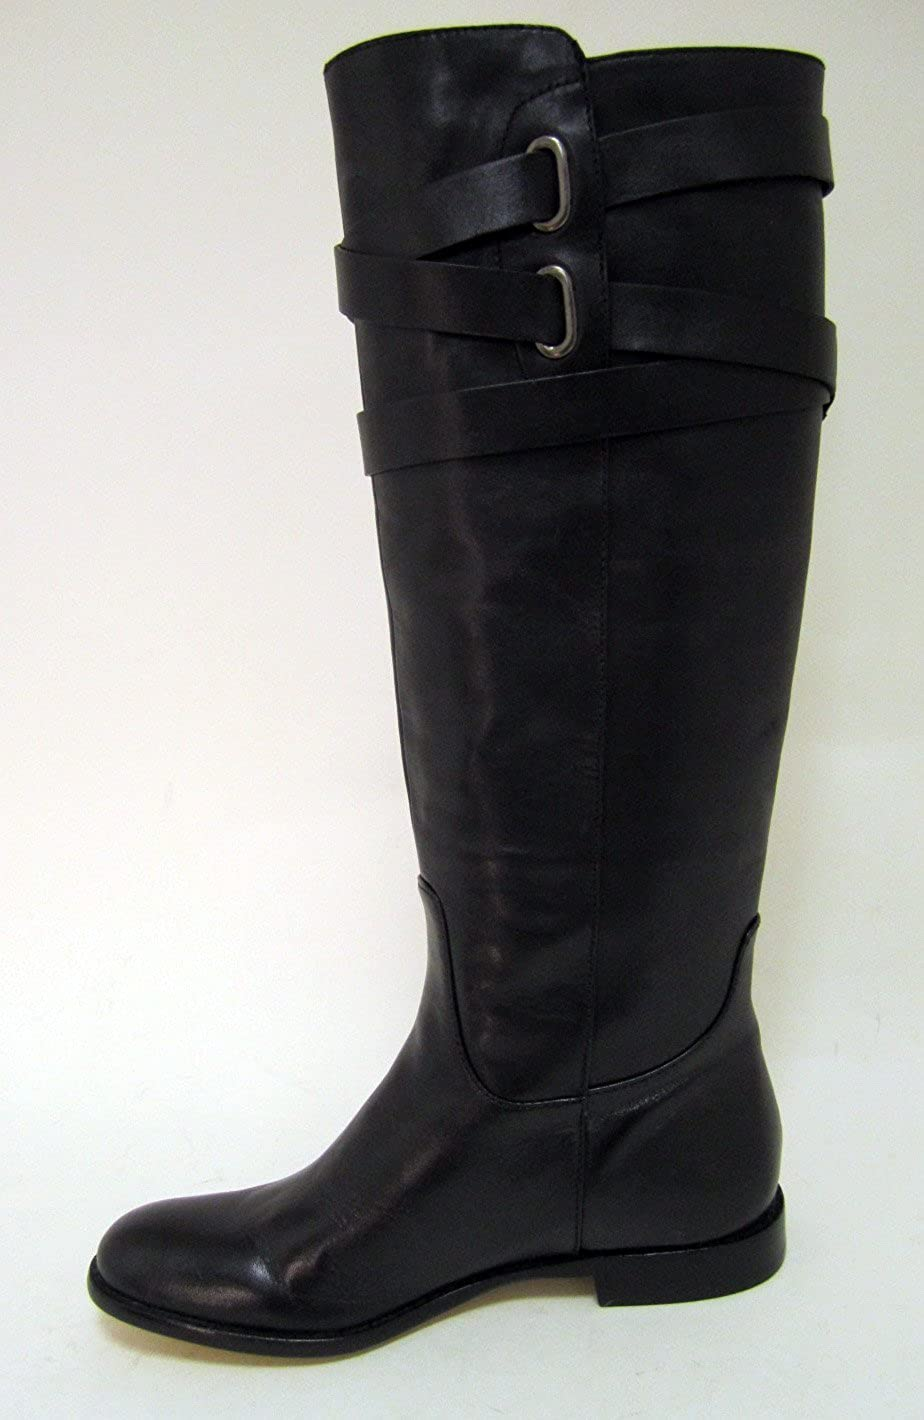 63c871a826 Amazon.com | Coach Women's Boot Cayden Smooth Nappa Leather Black Boots  (6.5) [Apparel] | Boots